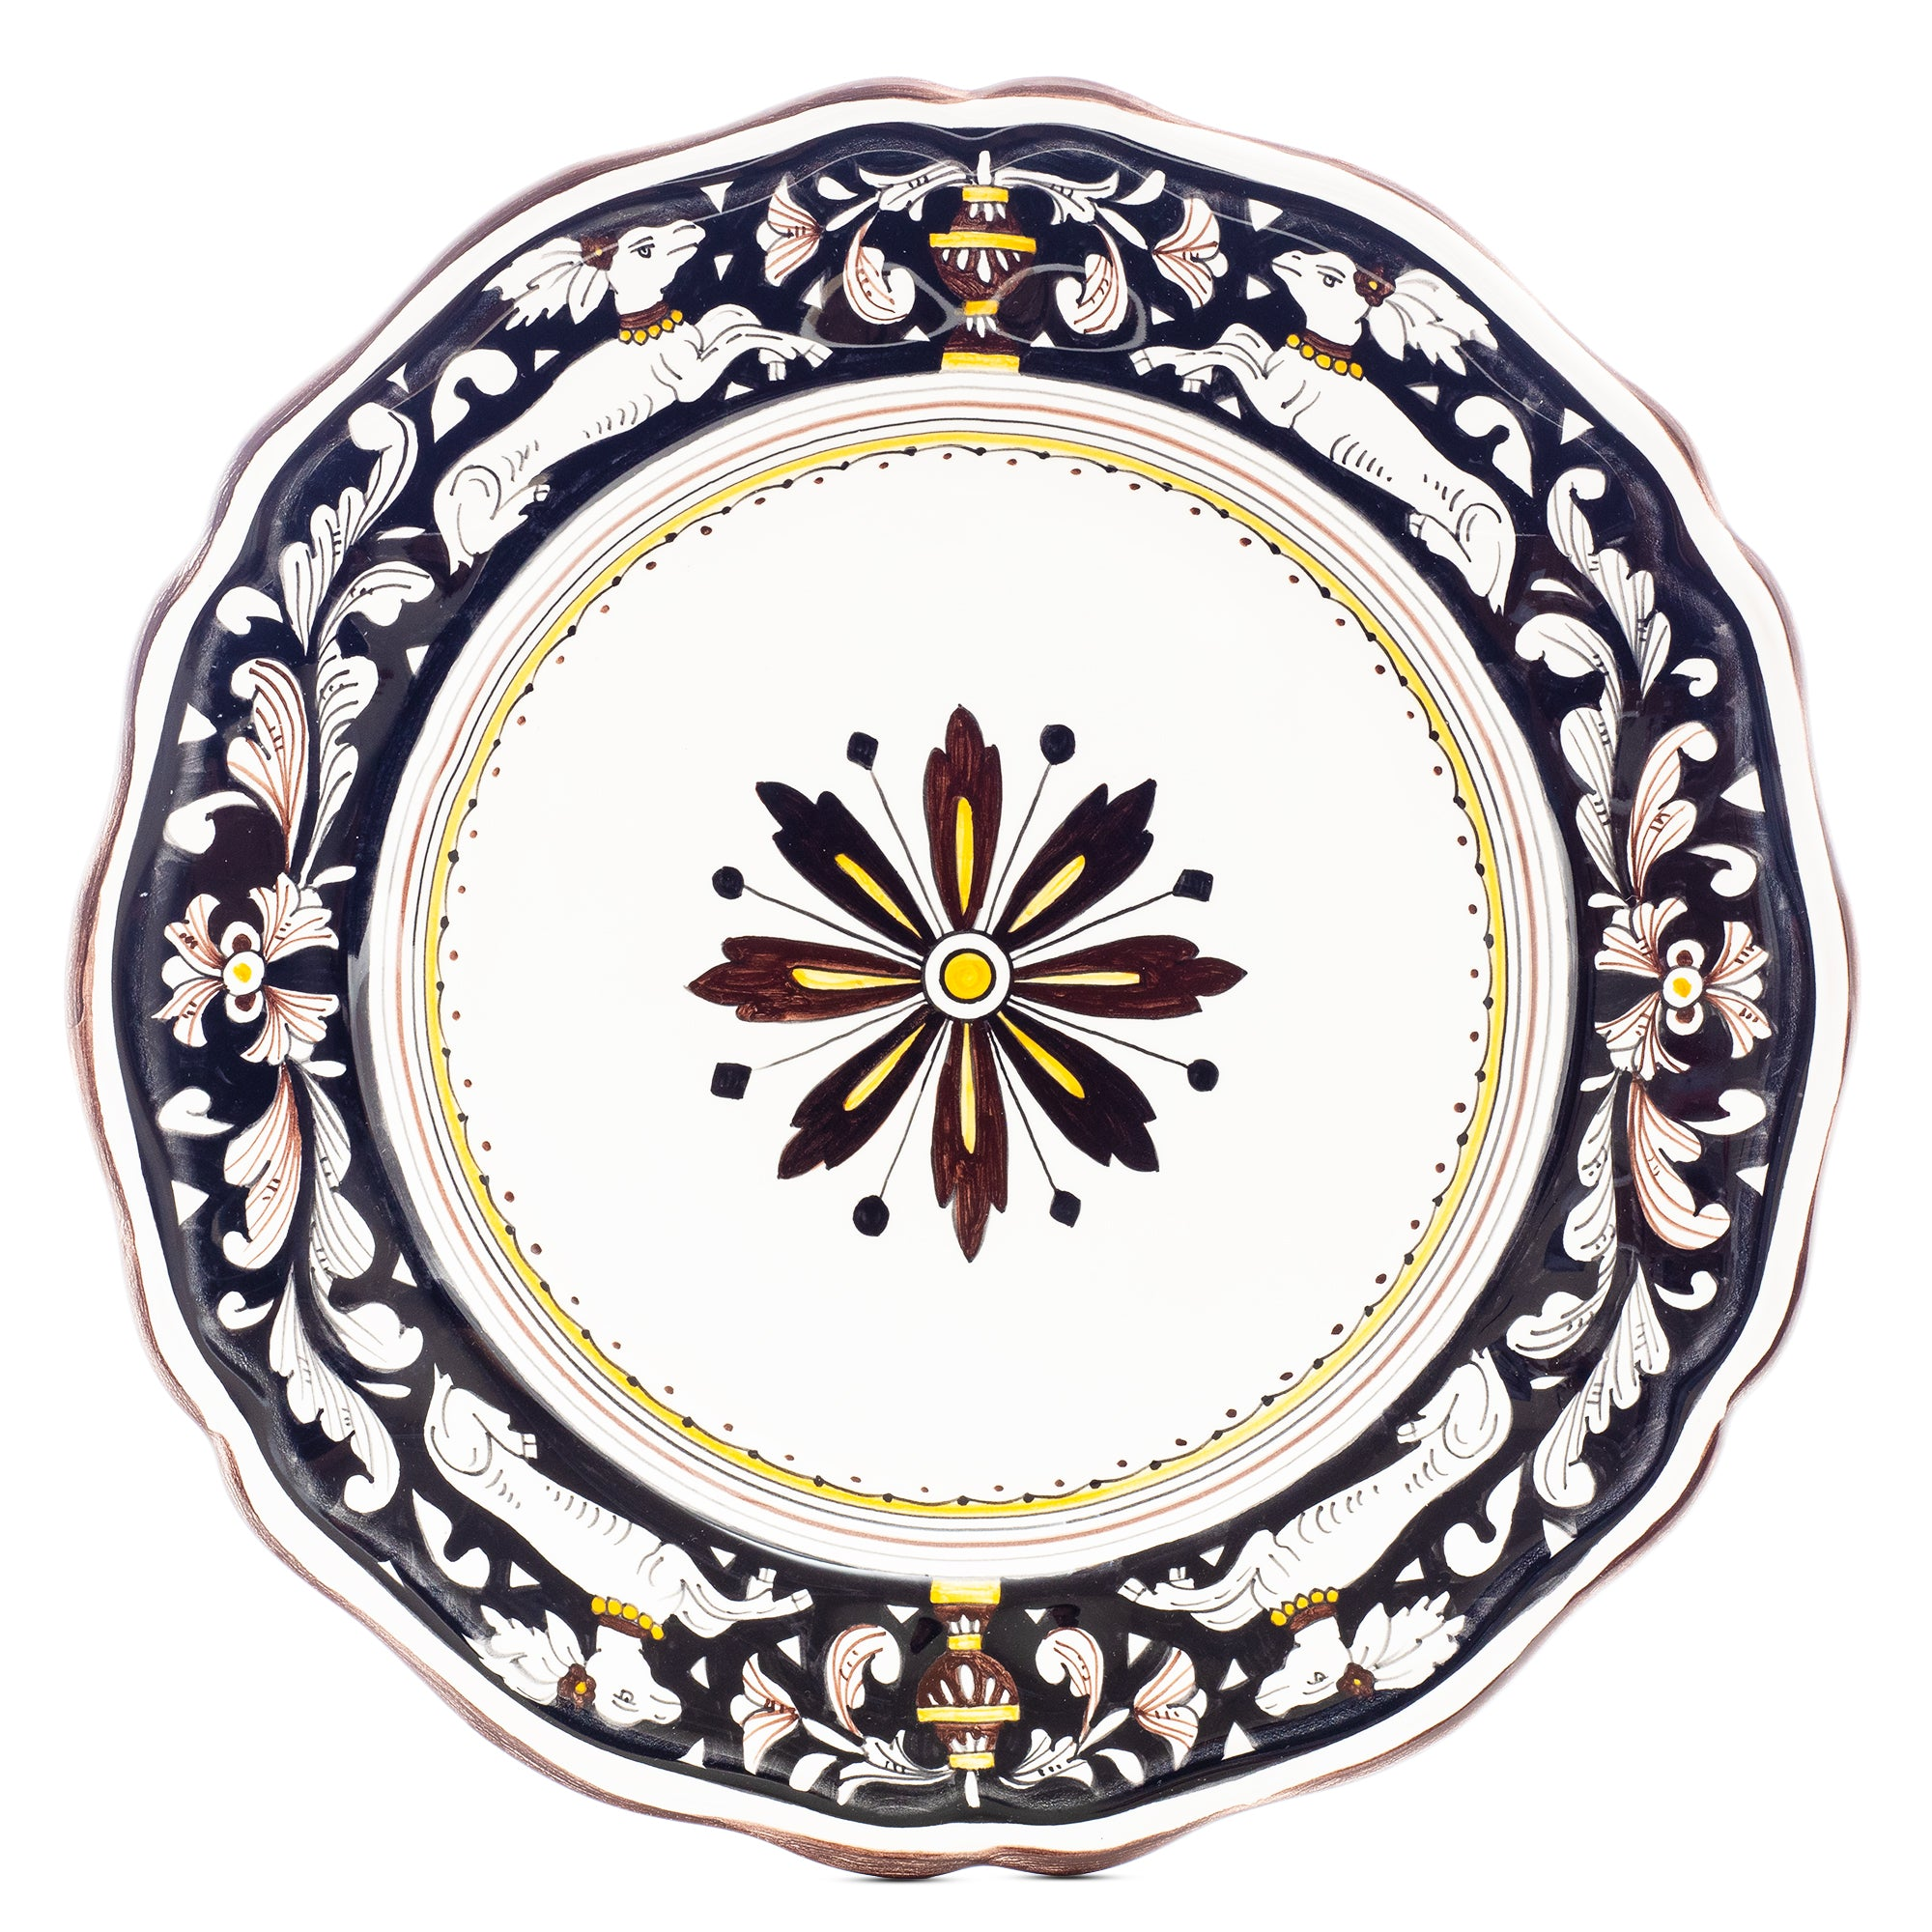 Siena Dinner Plate, Full Design, Biordi dishes, Italian Ceramics, Italian Dinnerware, Italian Pottery, Majolica